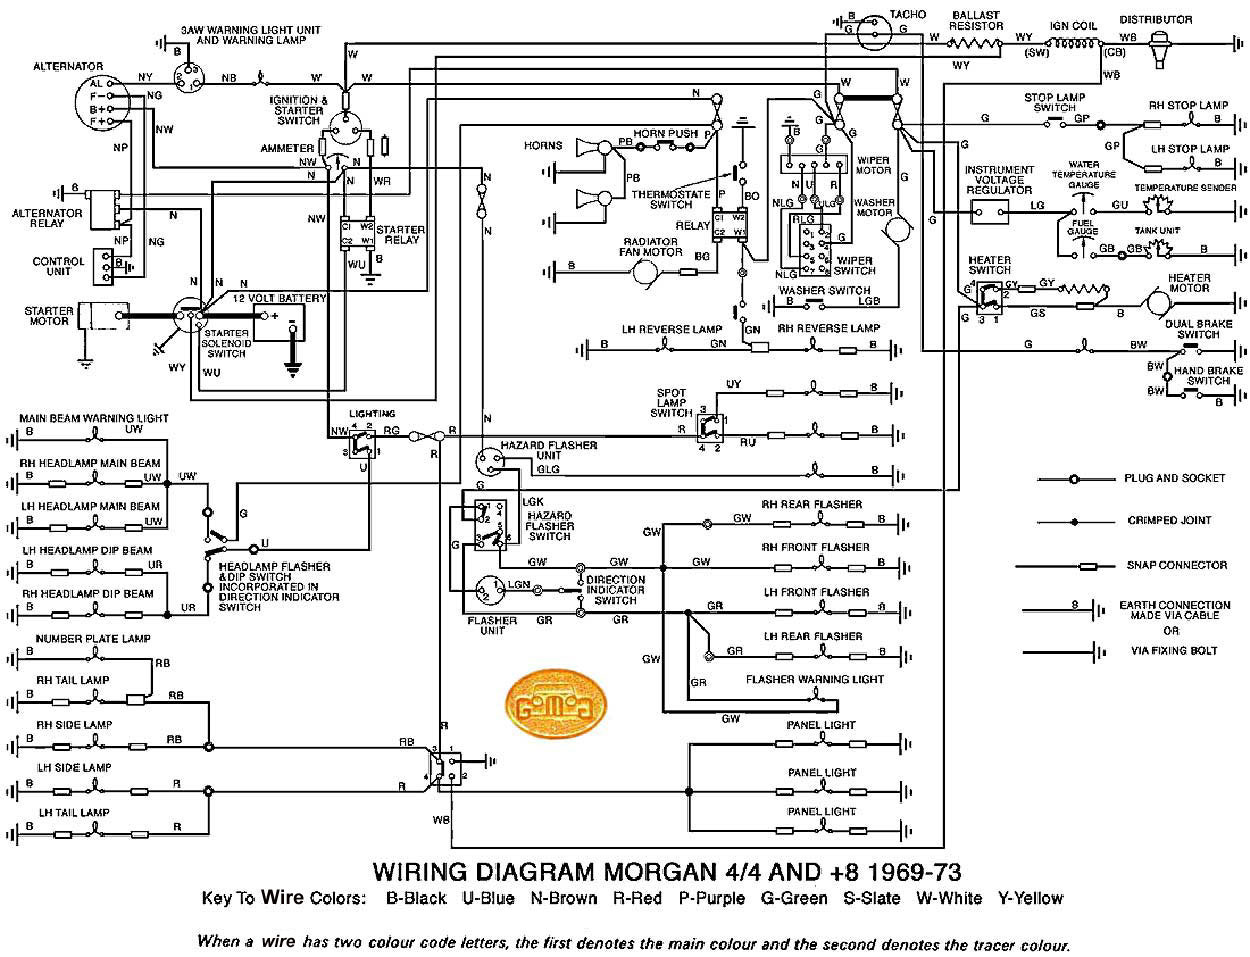 98 Chevy 4x4 4 Headlight Wiring Diagram